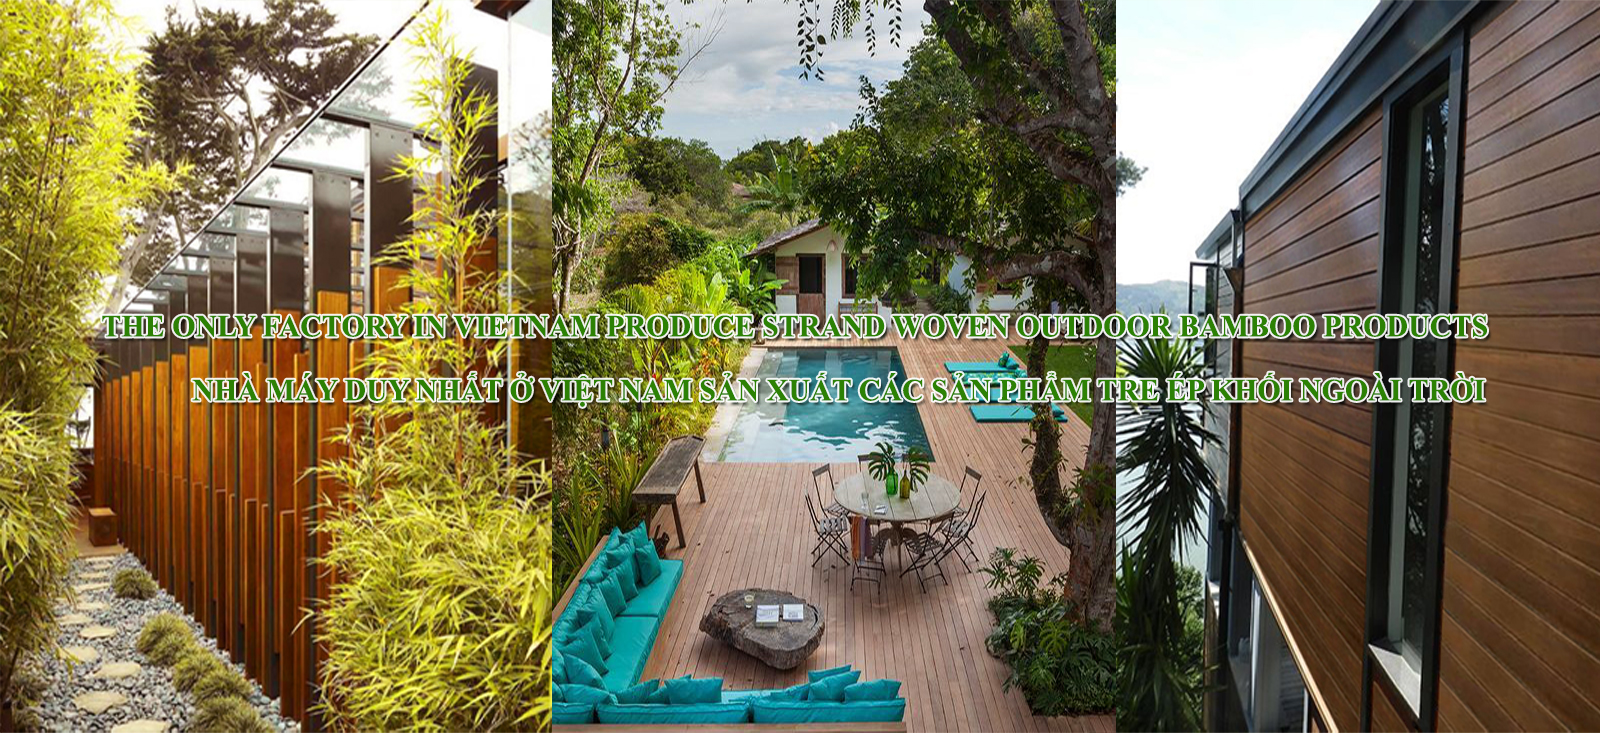 Bamboo Outdoor products